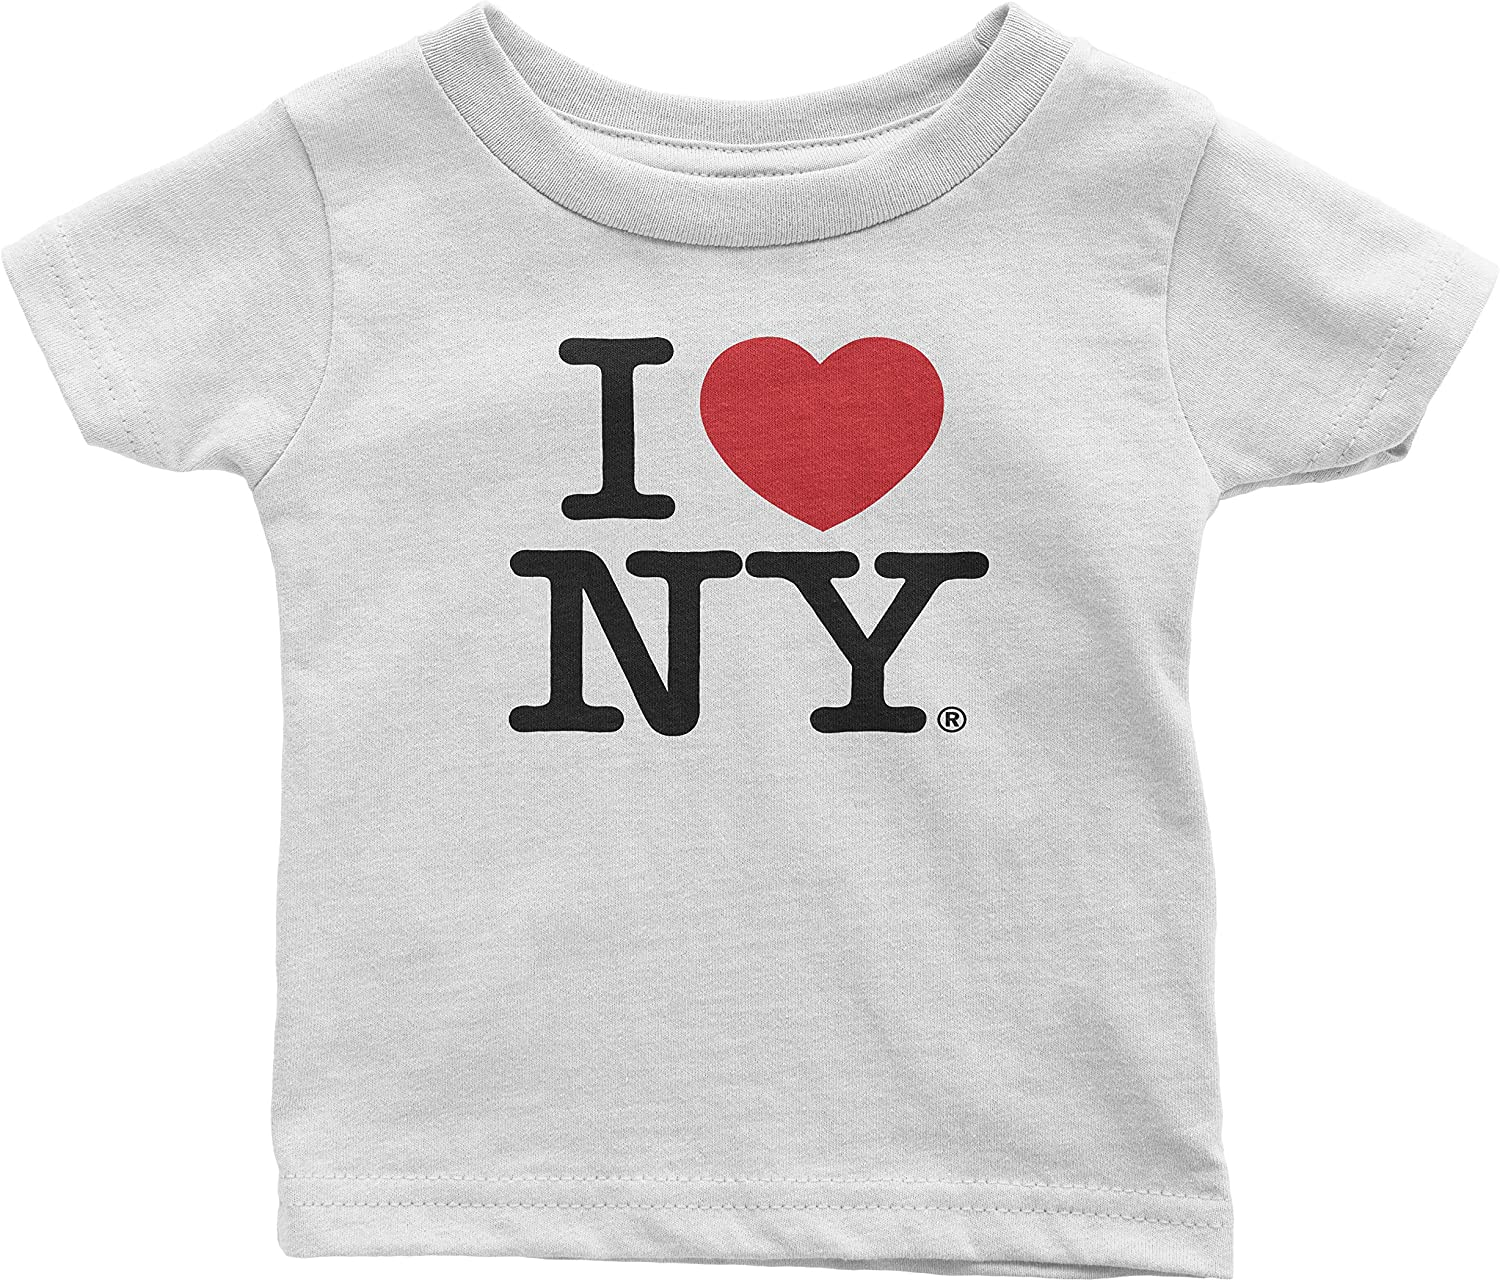 I Love NY Baby Tee Infant T-Shirt Officially Licensed